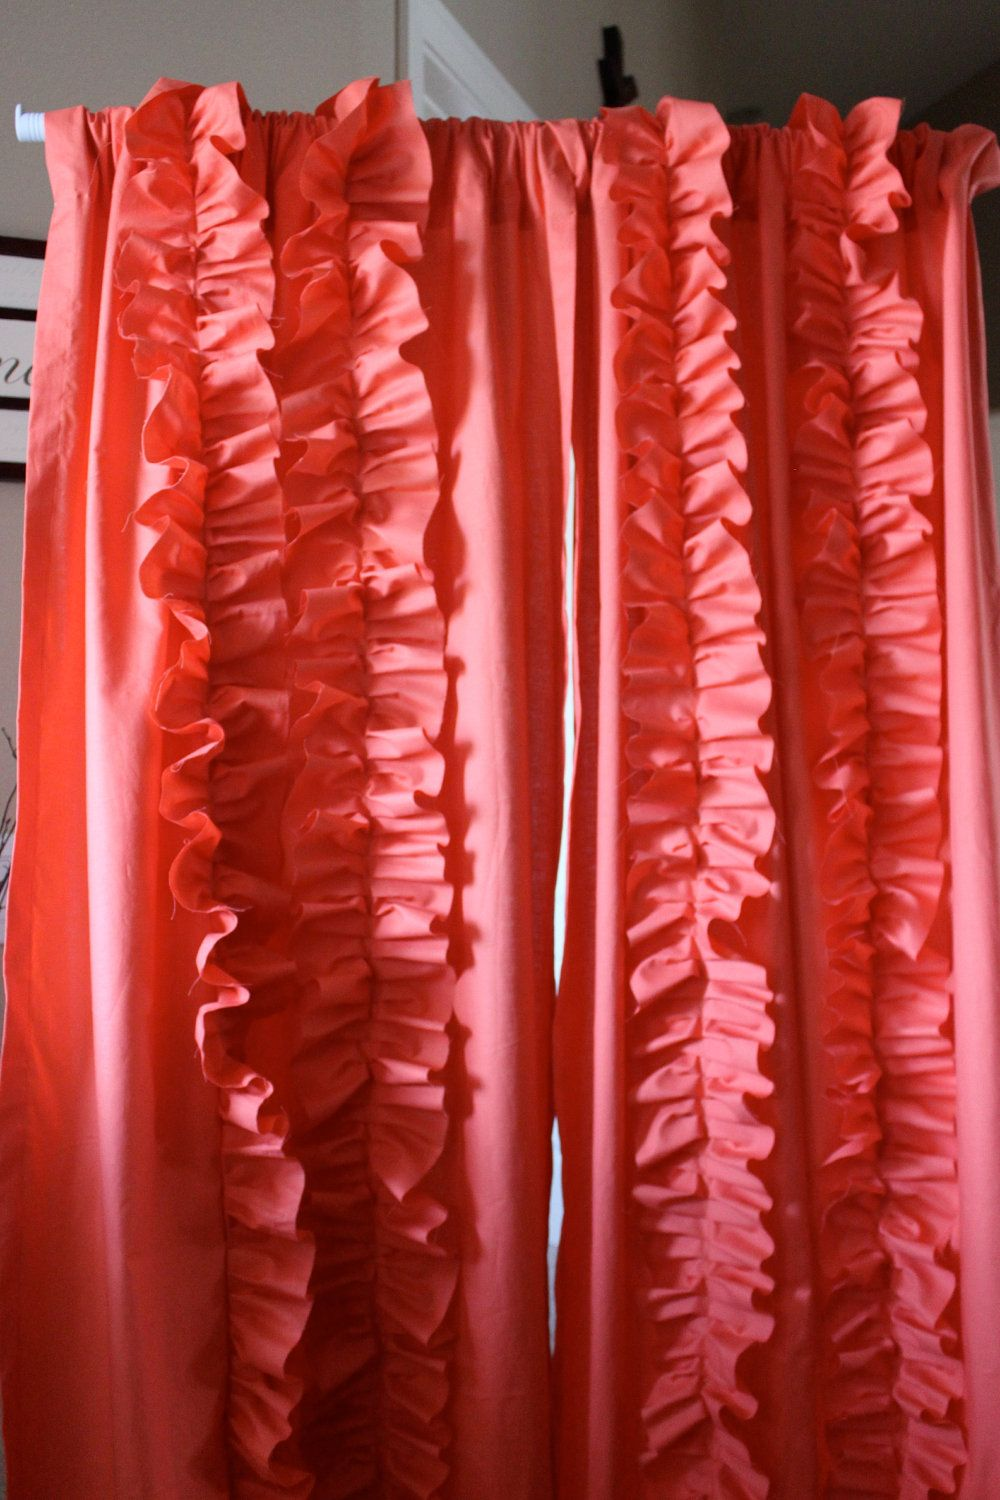 Falling Ruffle Coral Curtain by SelahJamesHandmade on Etsy, $200.00